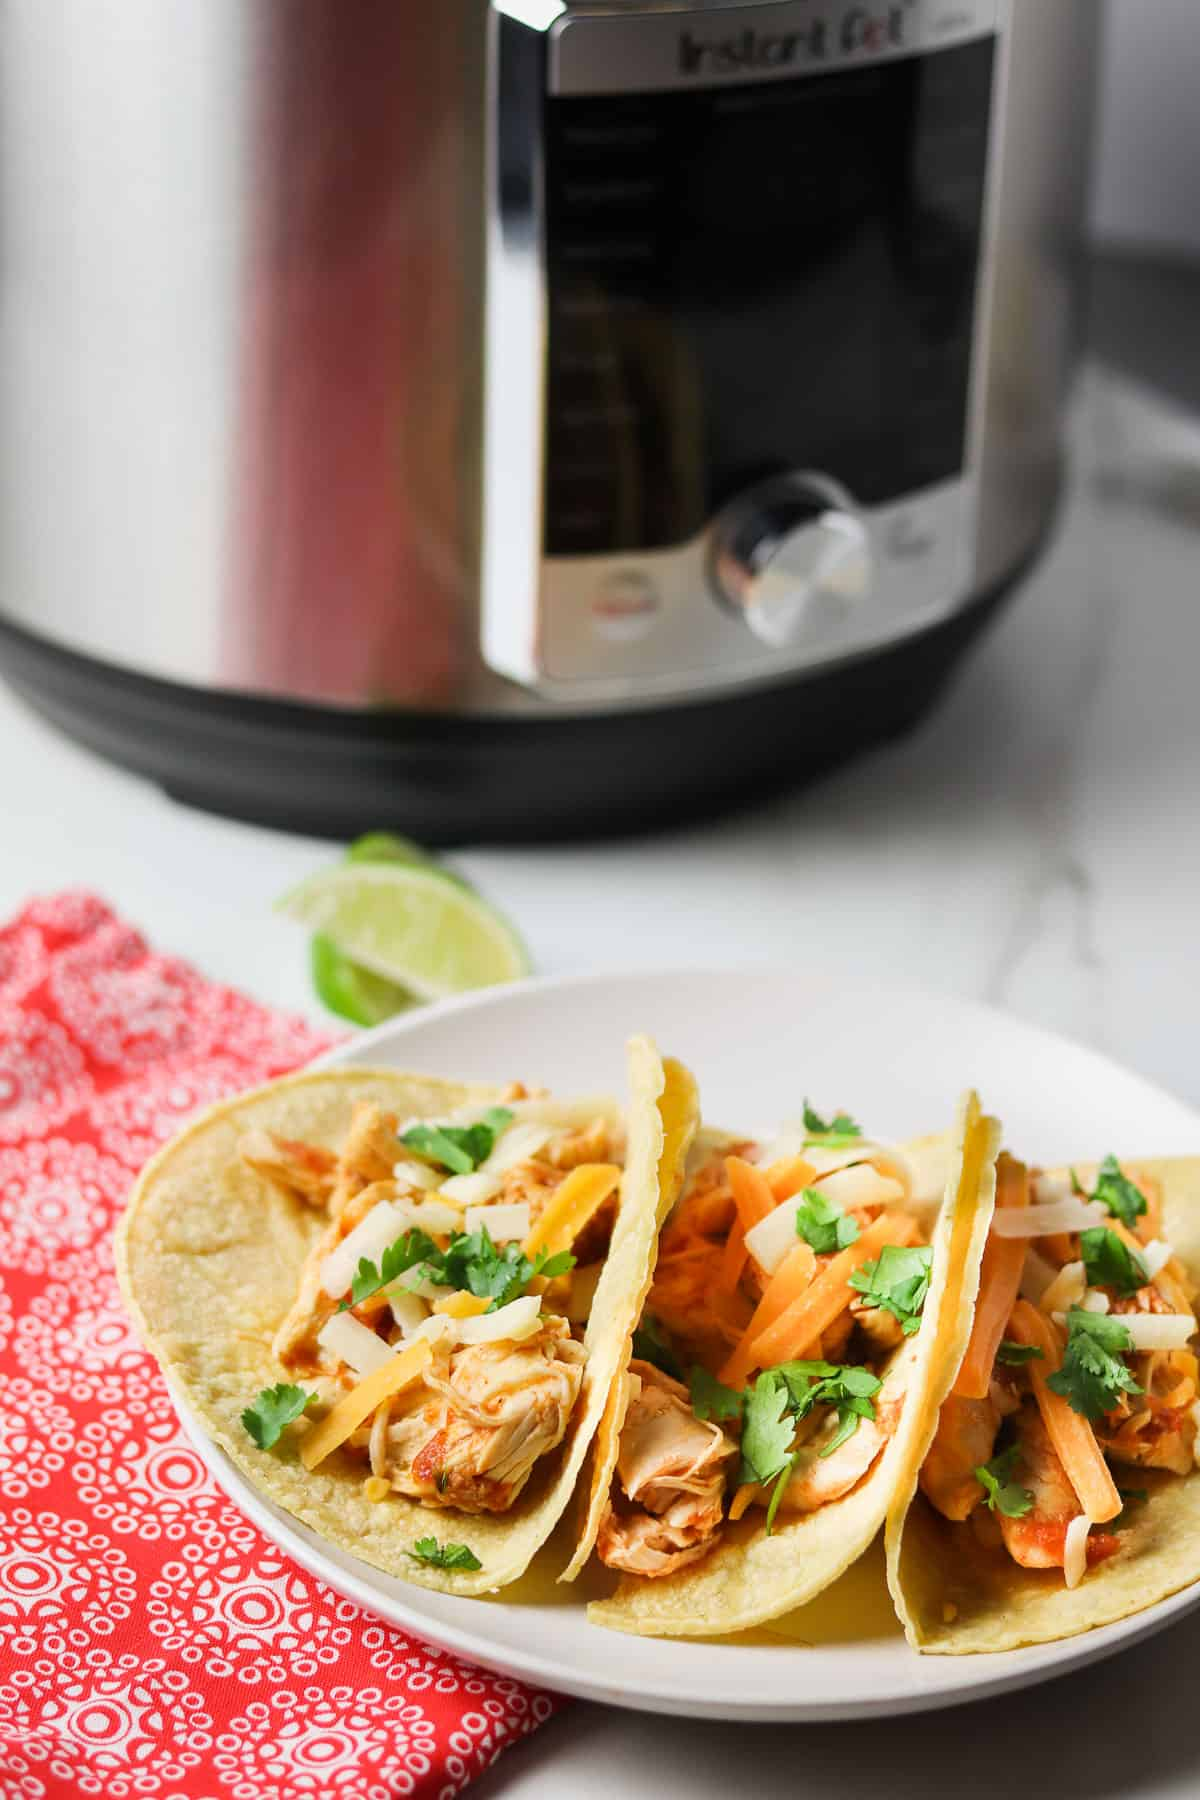 shredded chicken tacos on white plate with instant pot in background